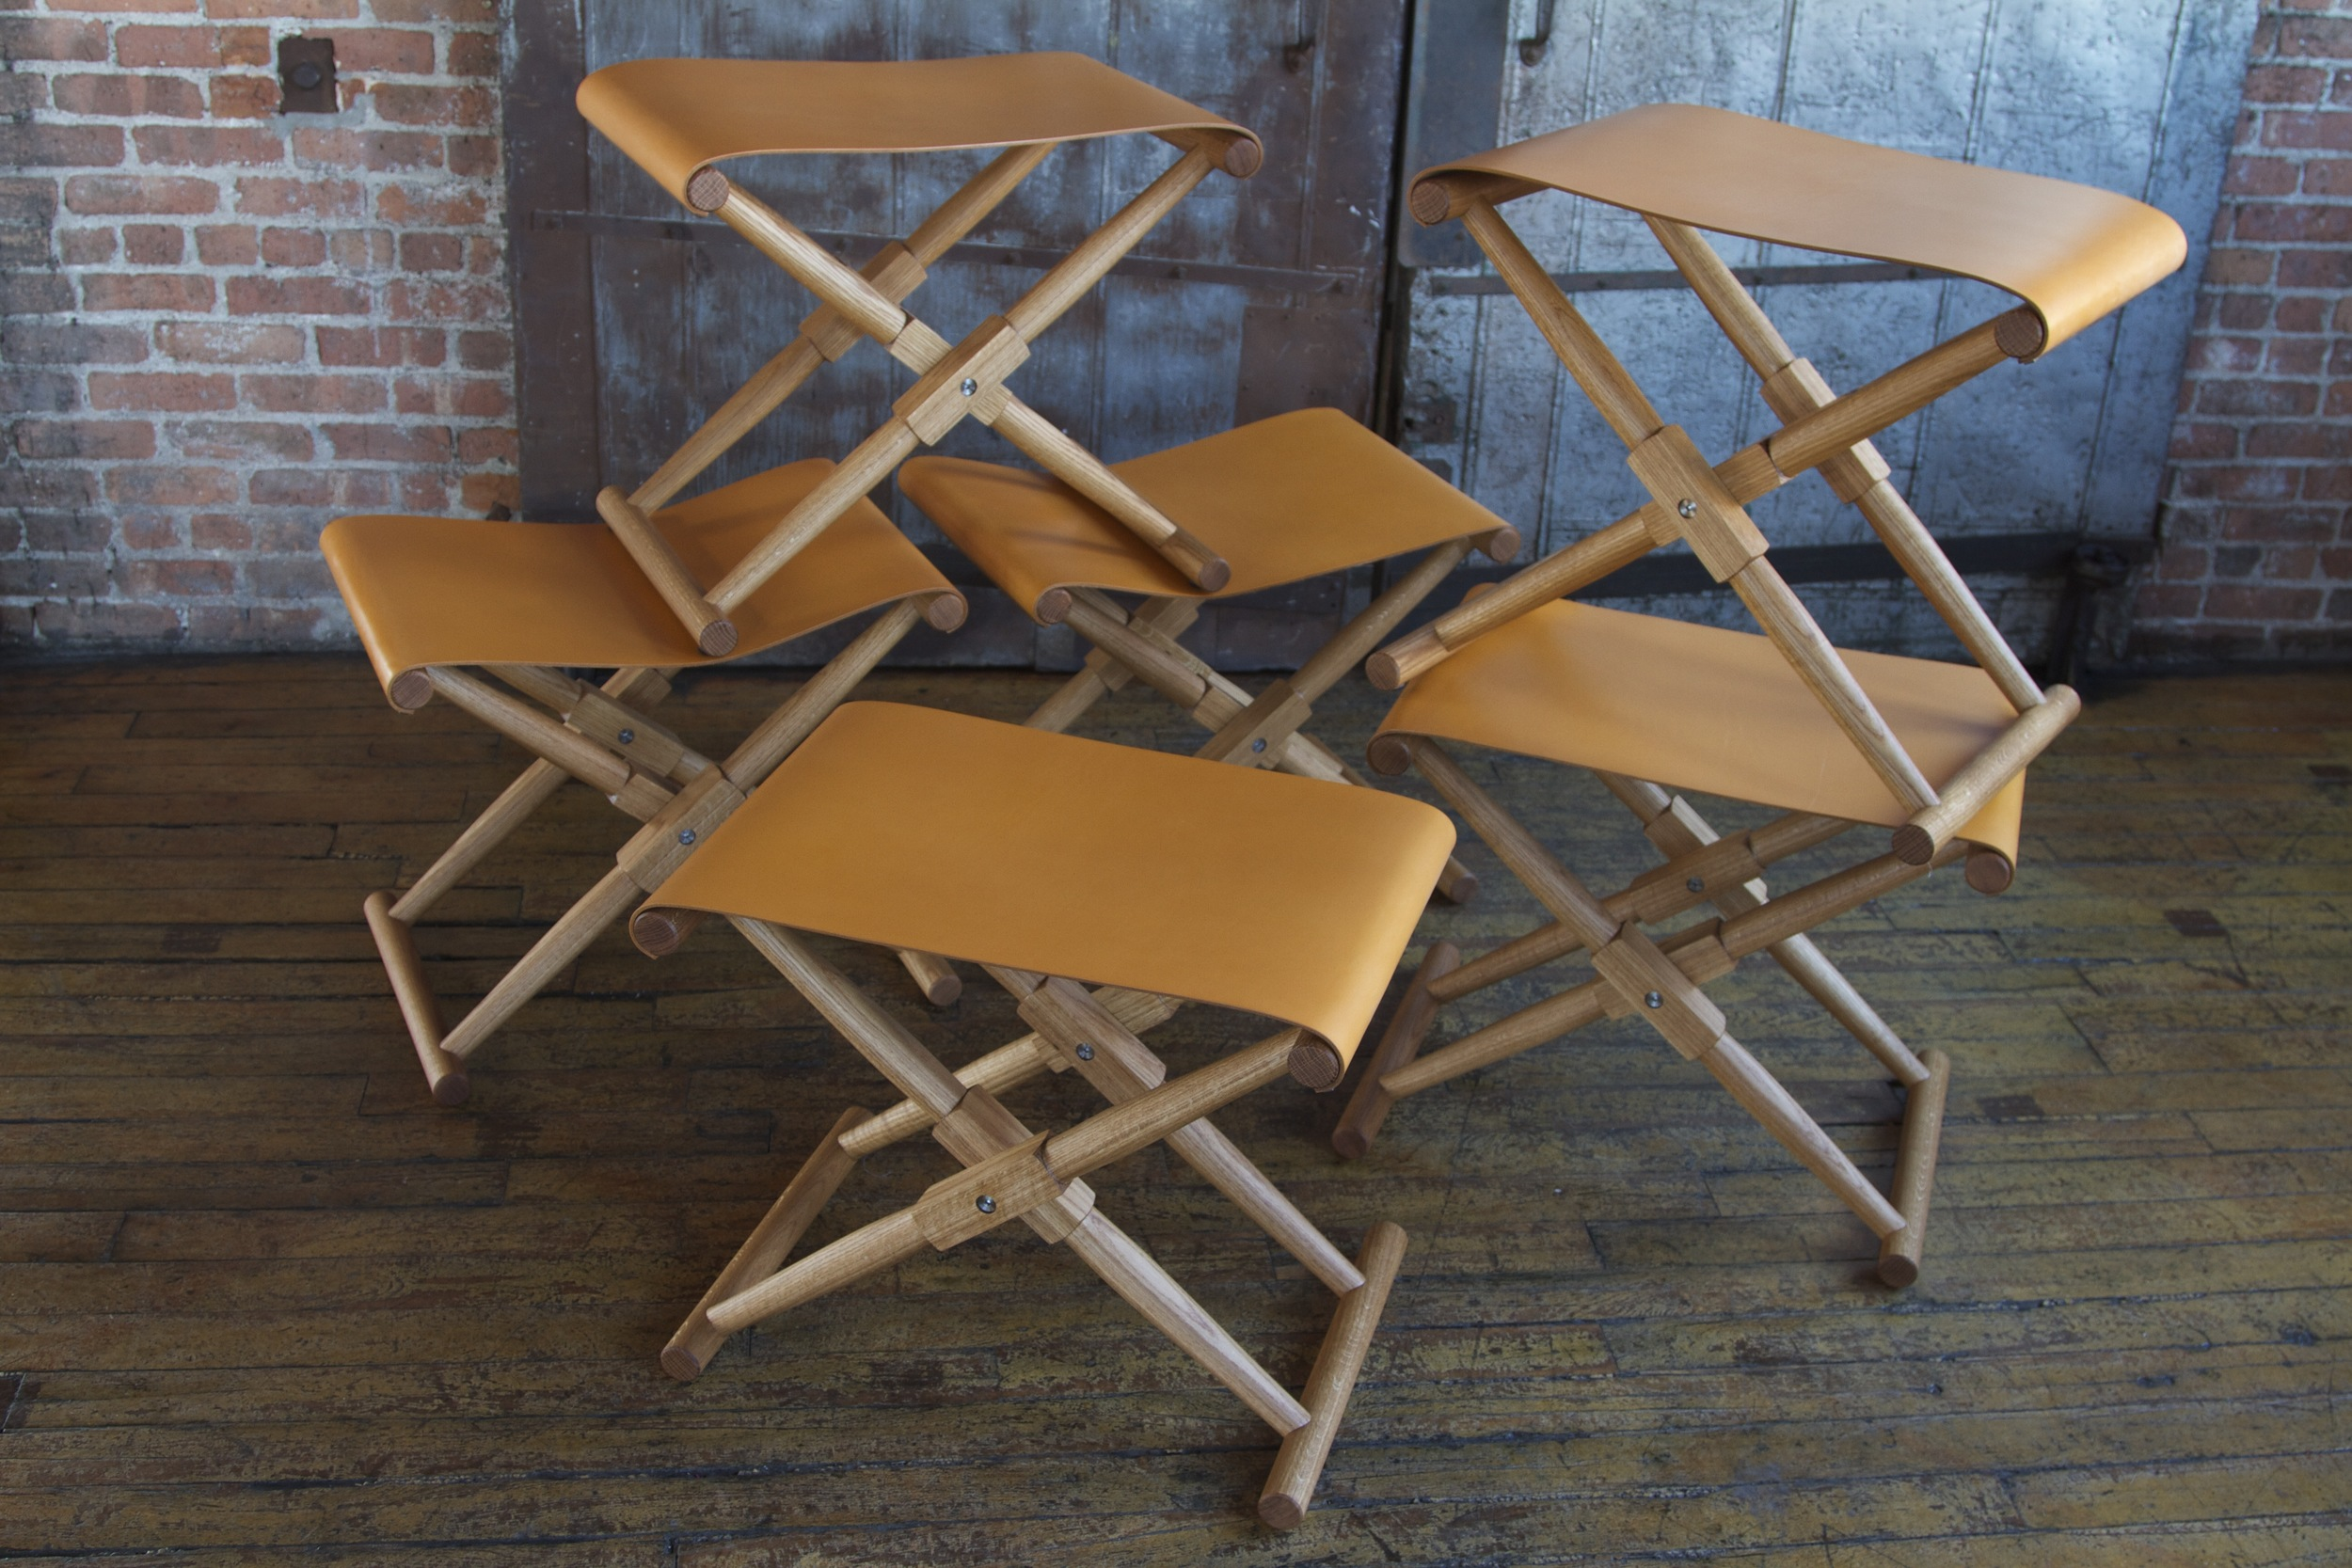 Matthiessen Stools with coach seats